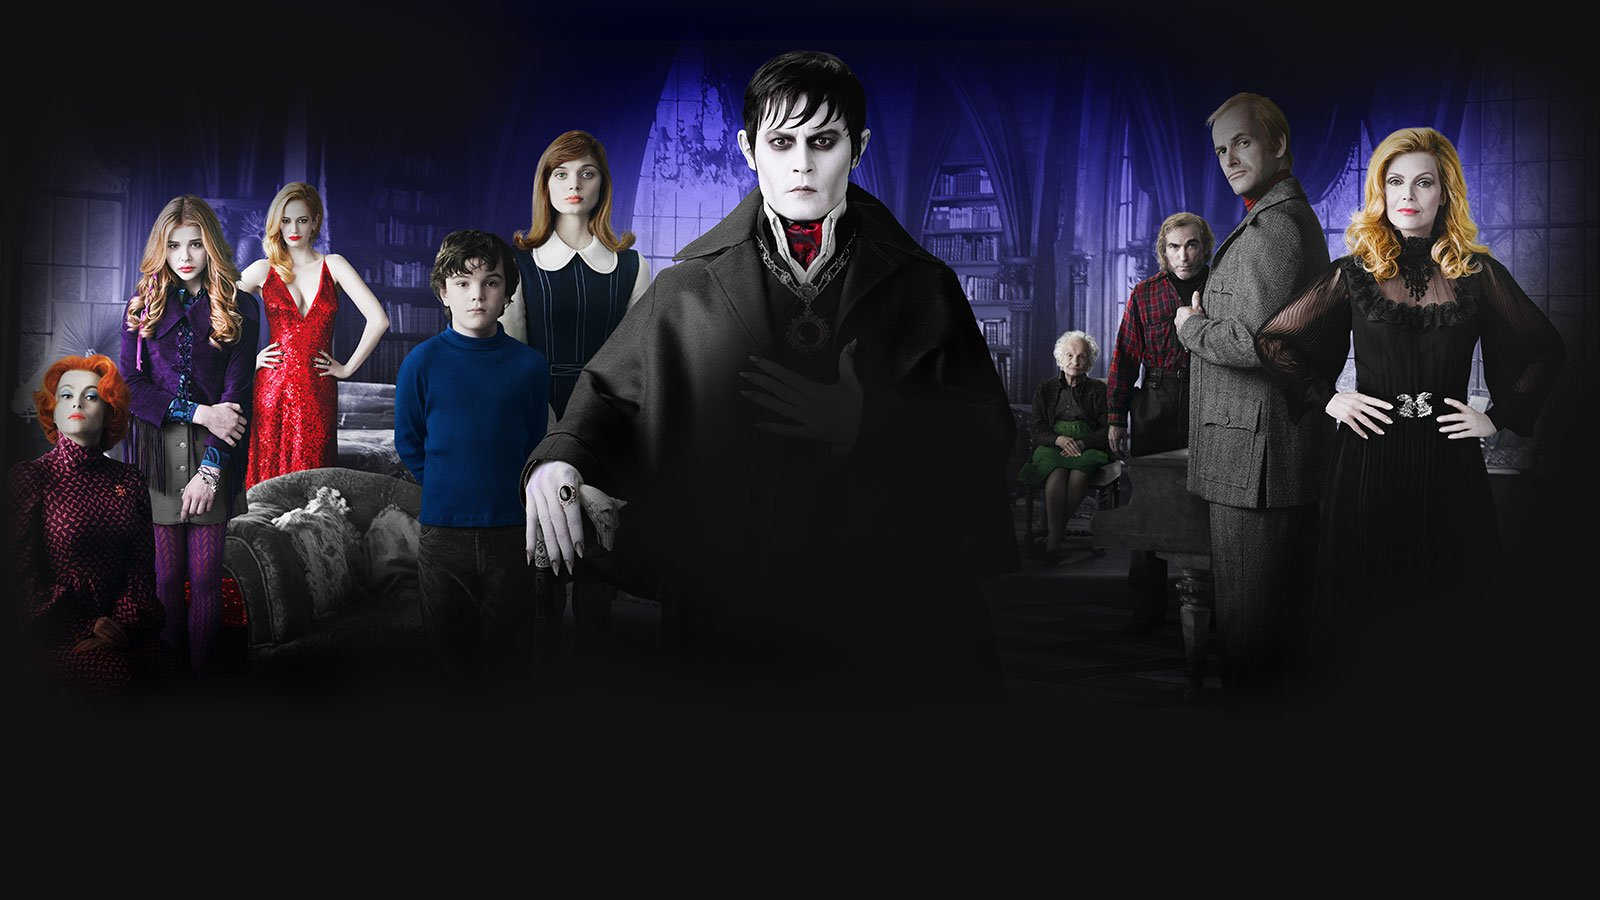 Dark Shadows 2012   Movies Wallpaper 29774222 1600x900